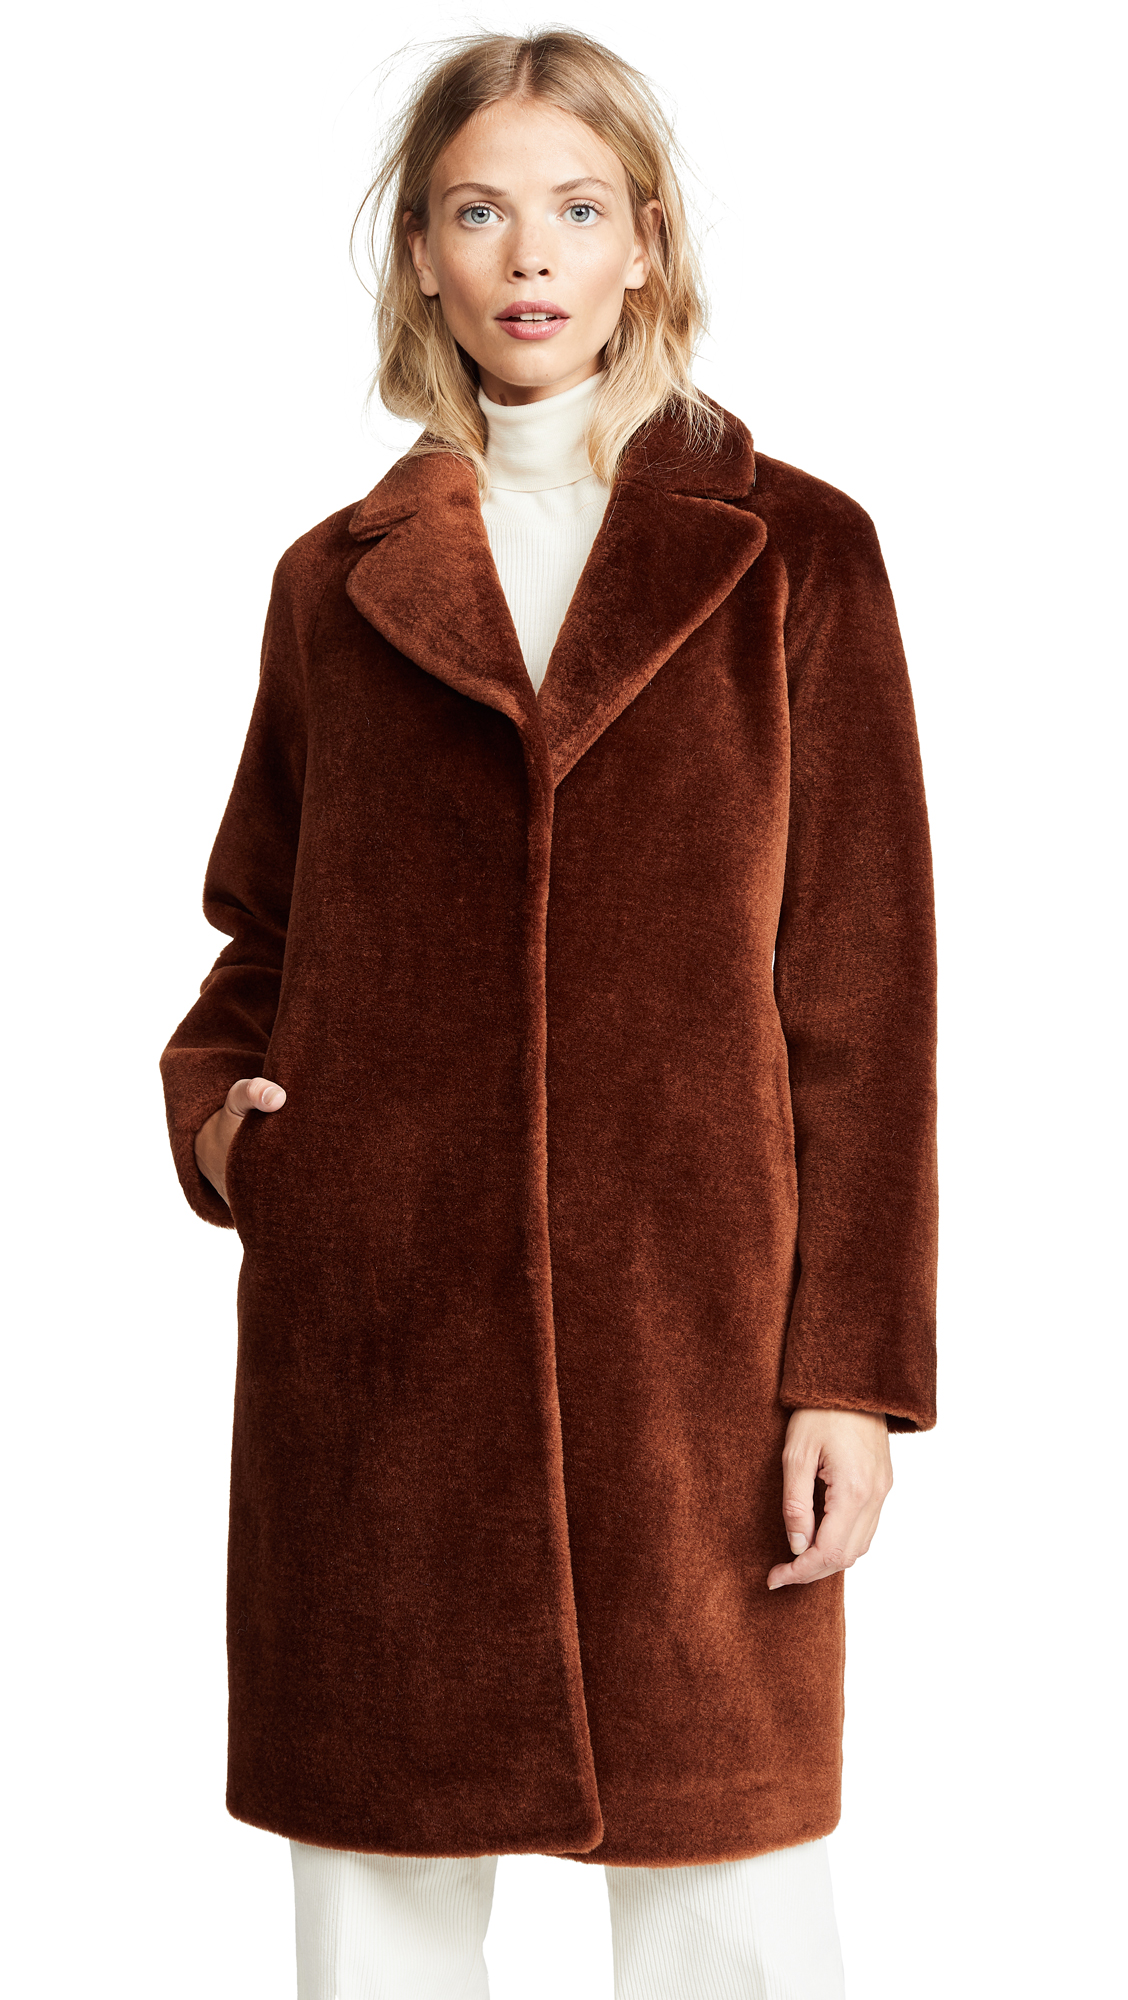 Soia & Kyo Rubina Wool Coat In Autumn